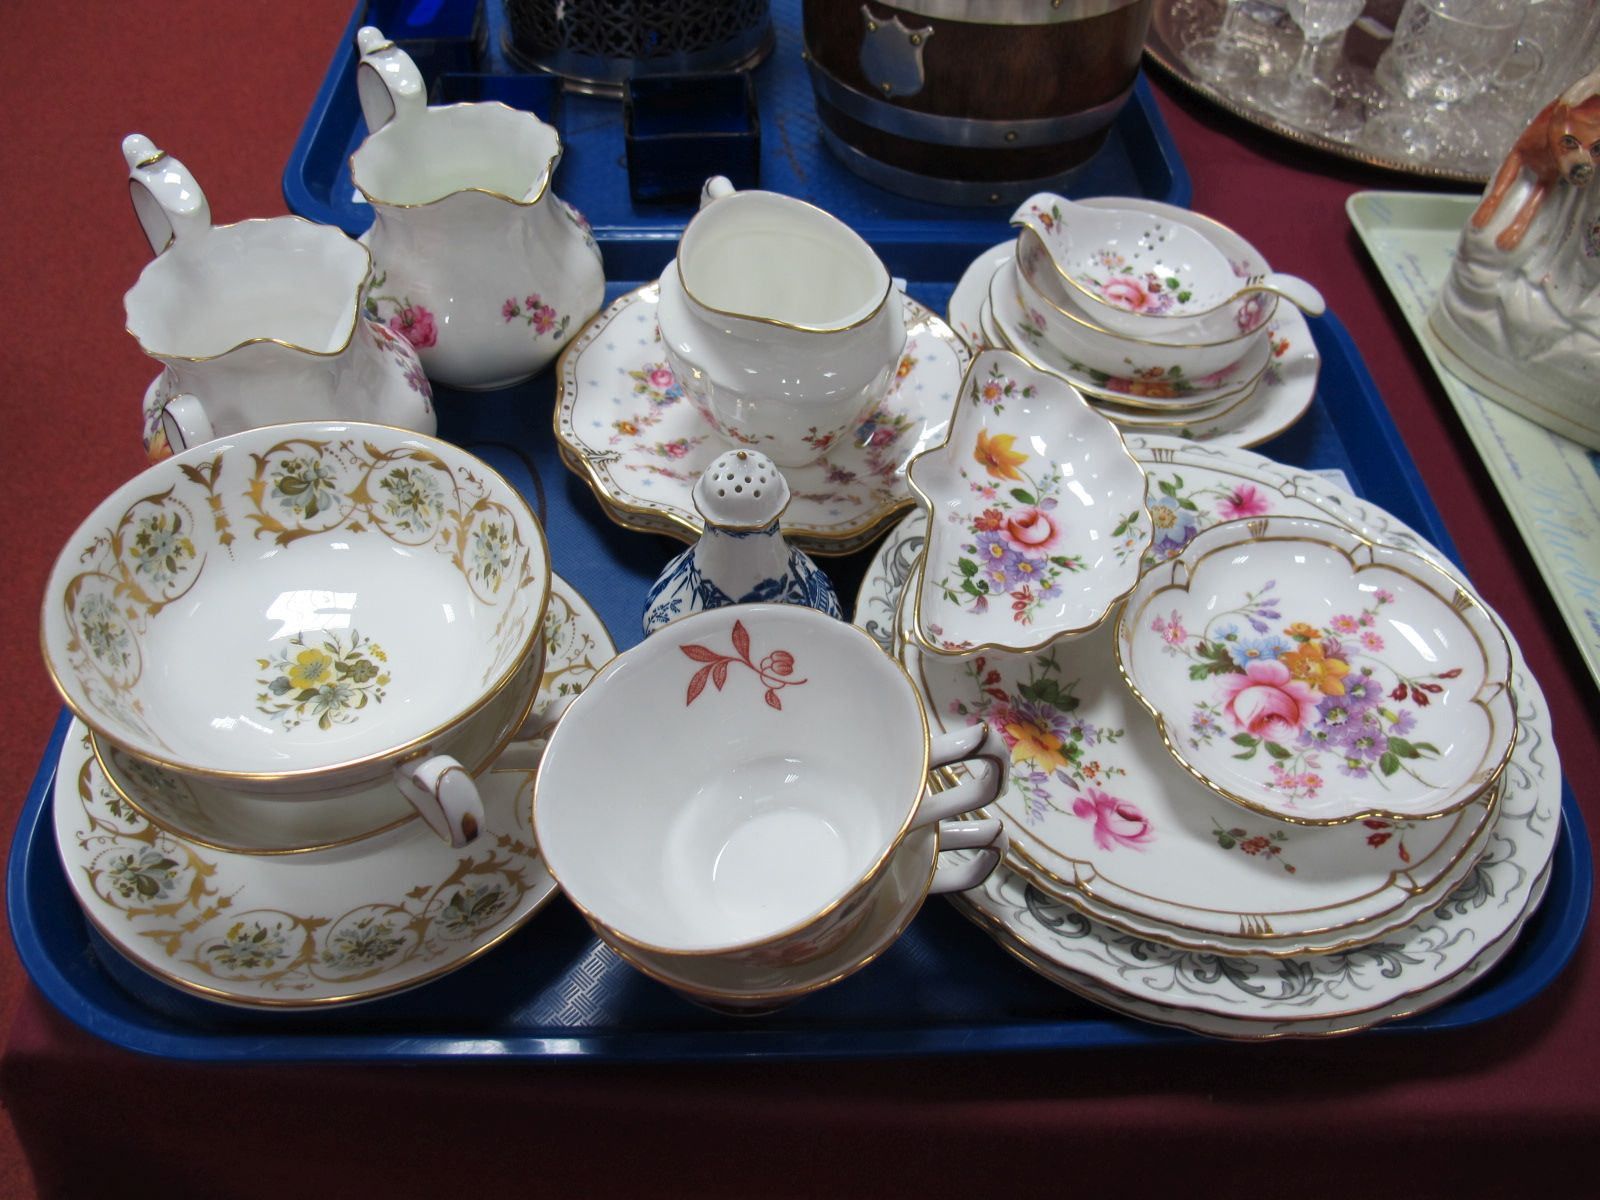 Lot 92 - Royal Crown Derby 'Derby Posies' Jugs, saucers, tea strainer on stand, tea plates, etc; together